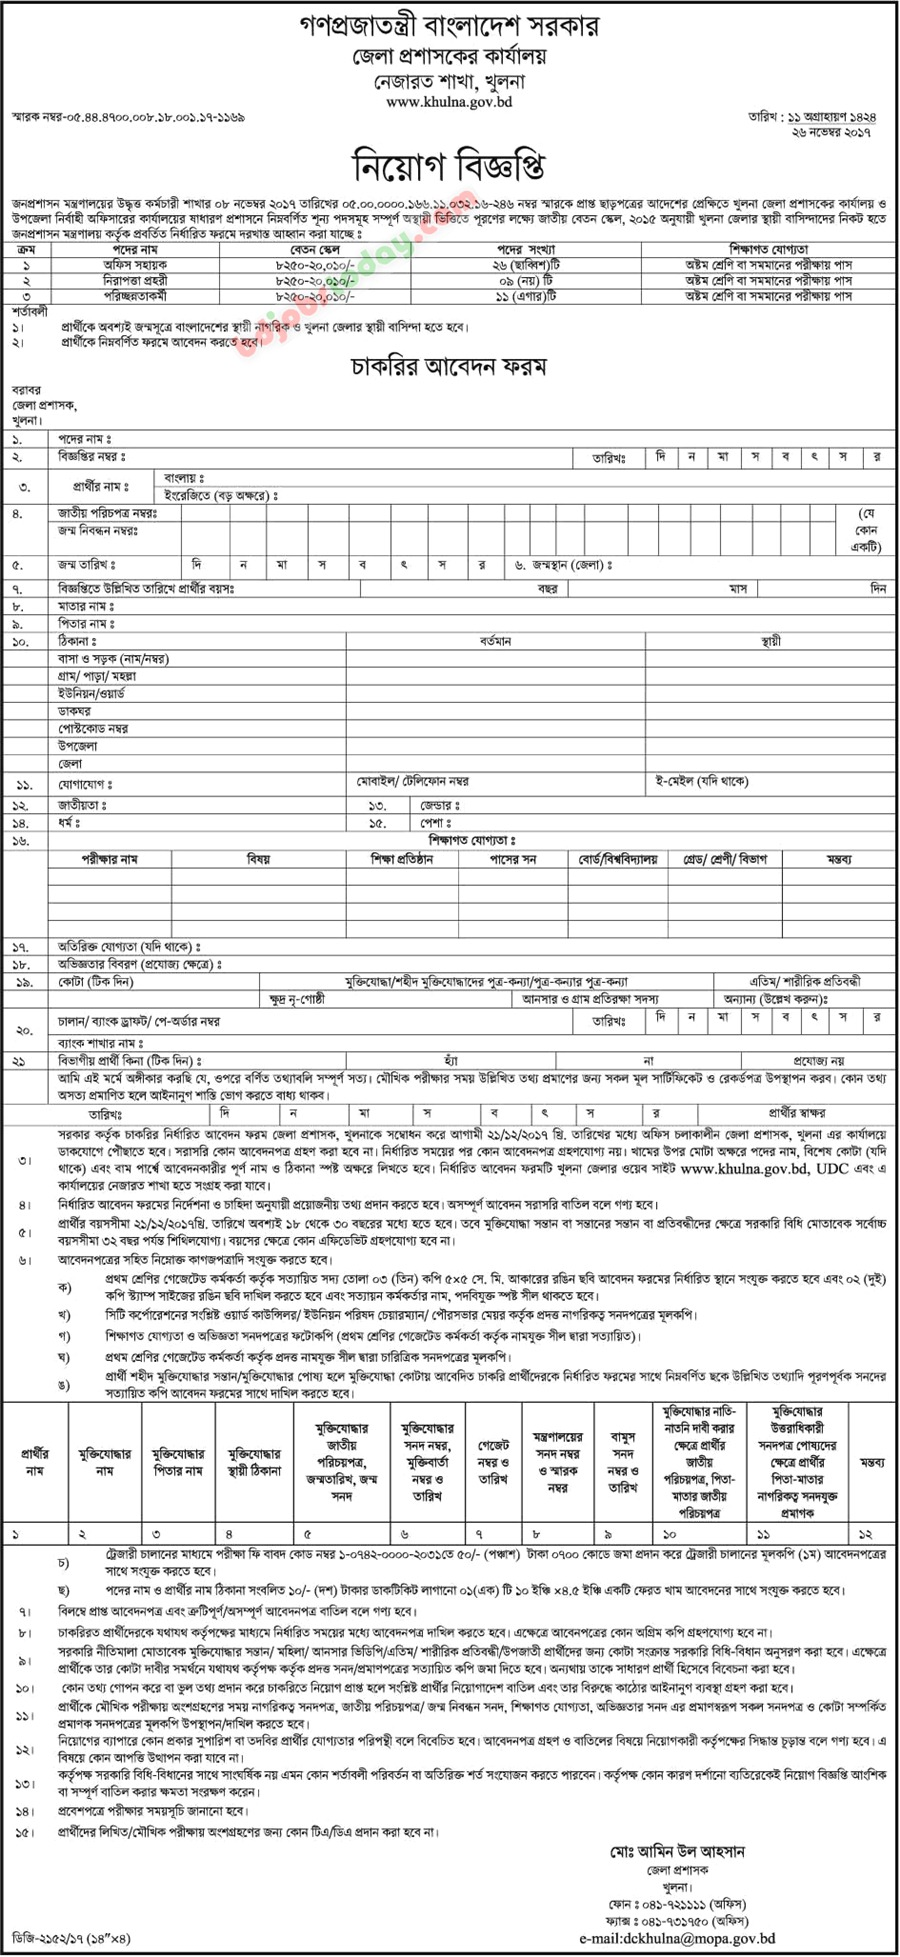 Office of District Commissioner, Khulna jobs